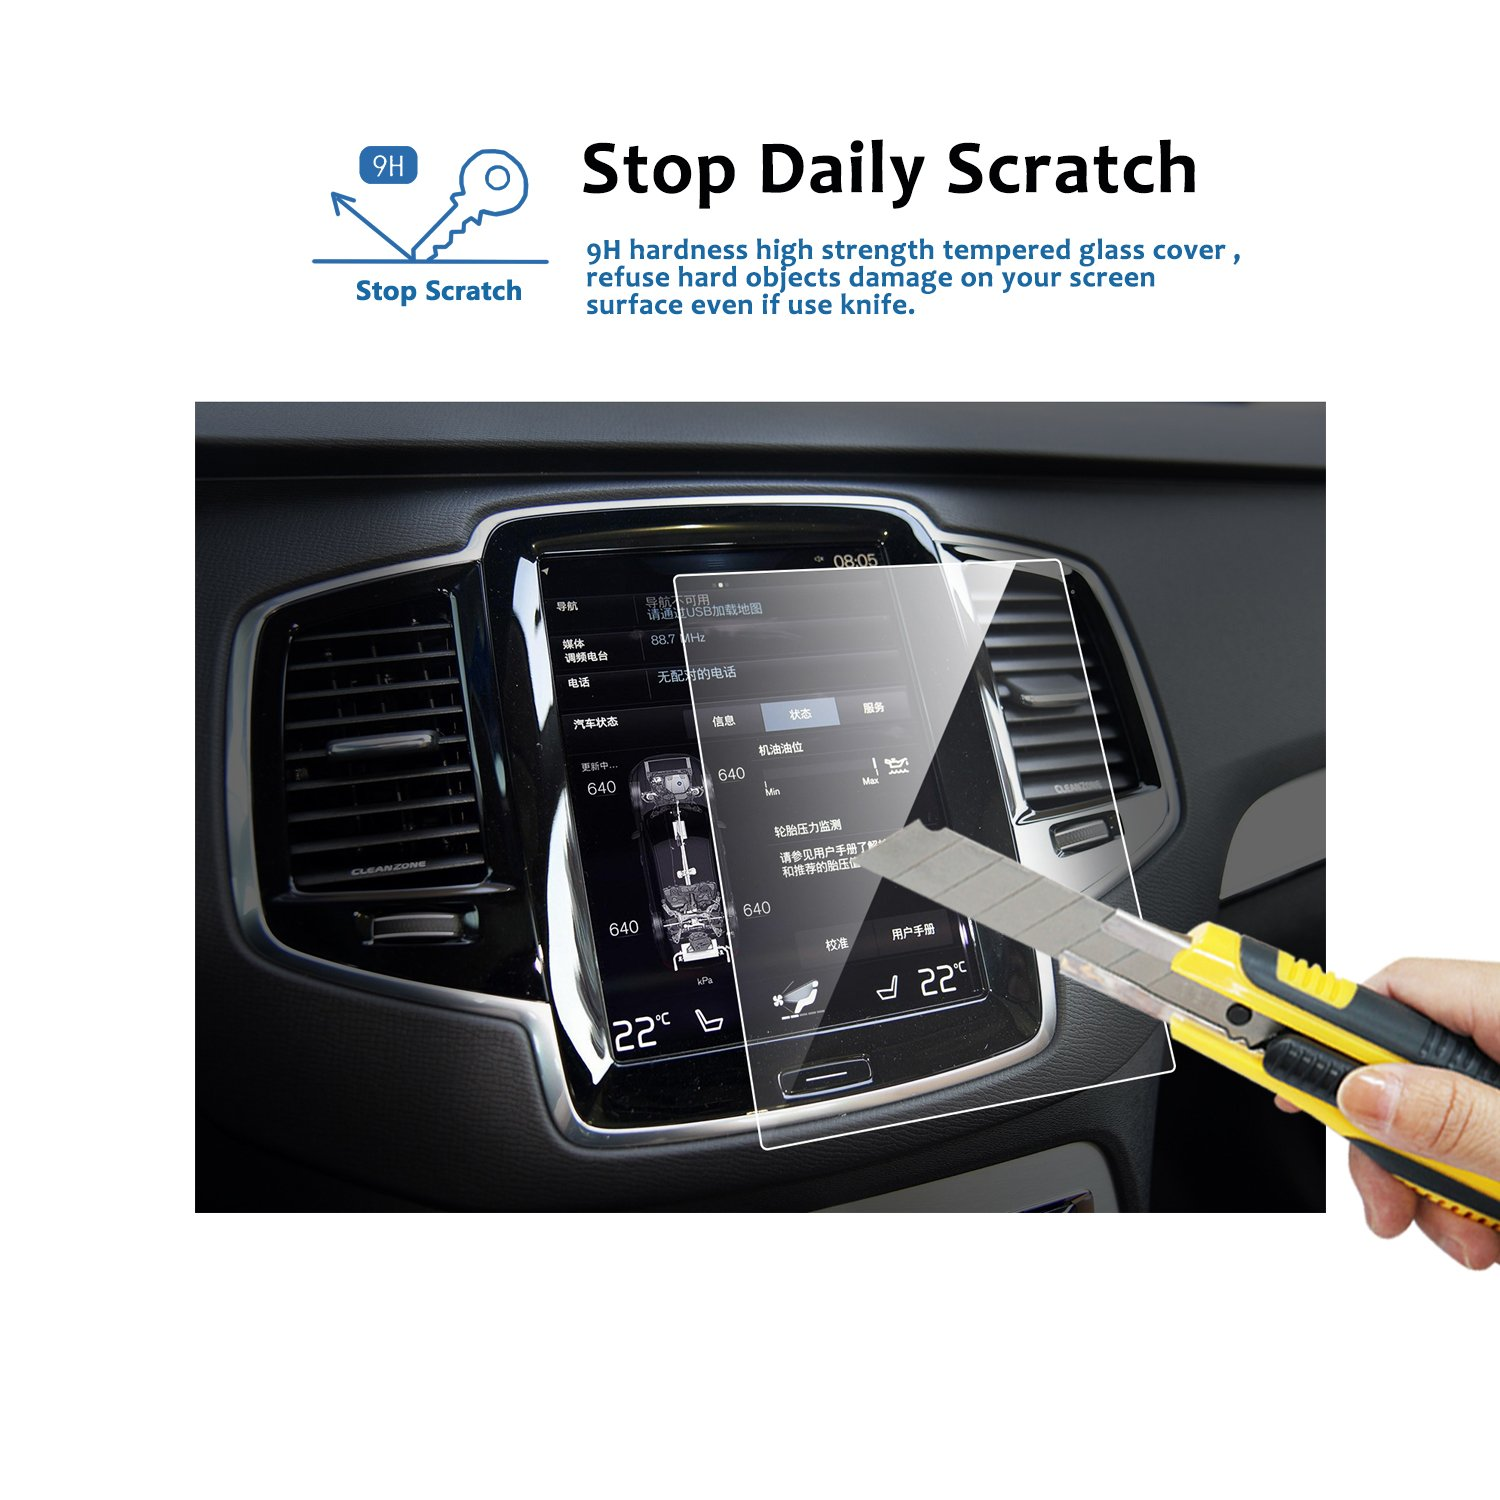 LFOTPP Volvo V90 XC90 2016-2019 2PCS Car Navigation and Air Conditioning Display Screen Protector Clear Tempered Glass Center Touch Screen Protector Against Scratch High Clarity